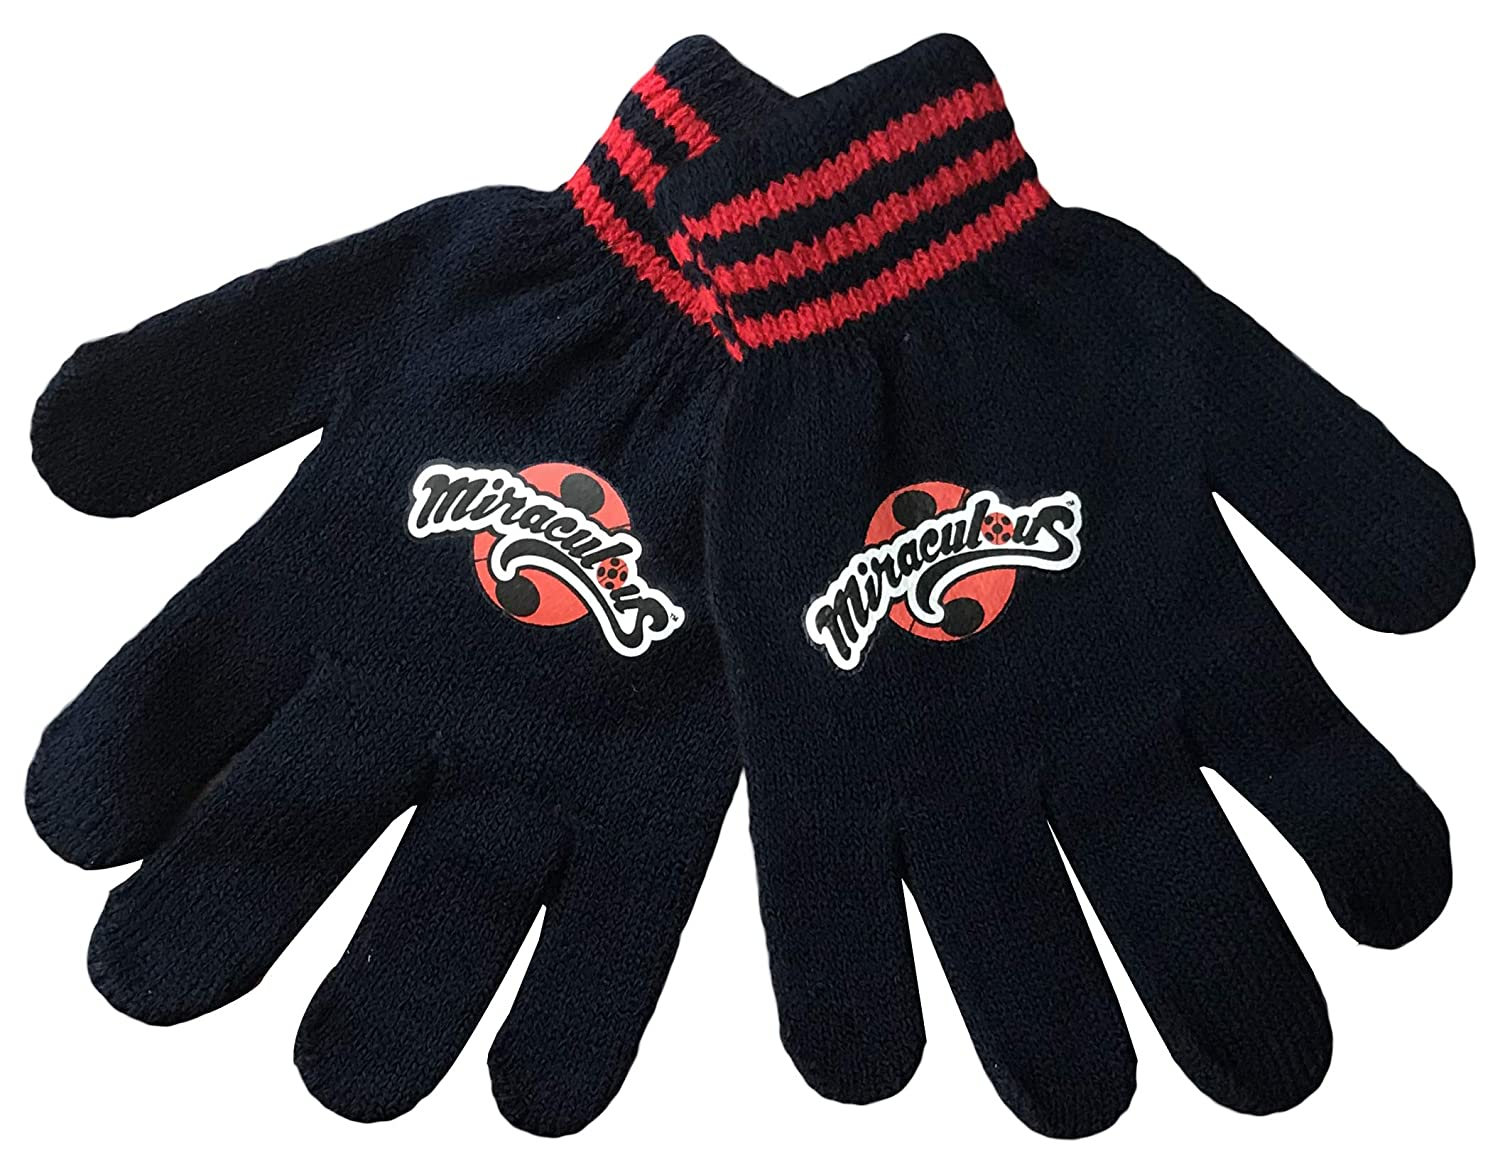 Miraculous Tales of Ladybug and Cat Noir Winter Hand Gloves